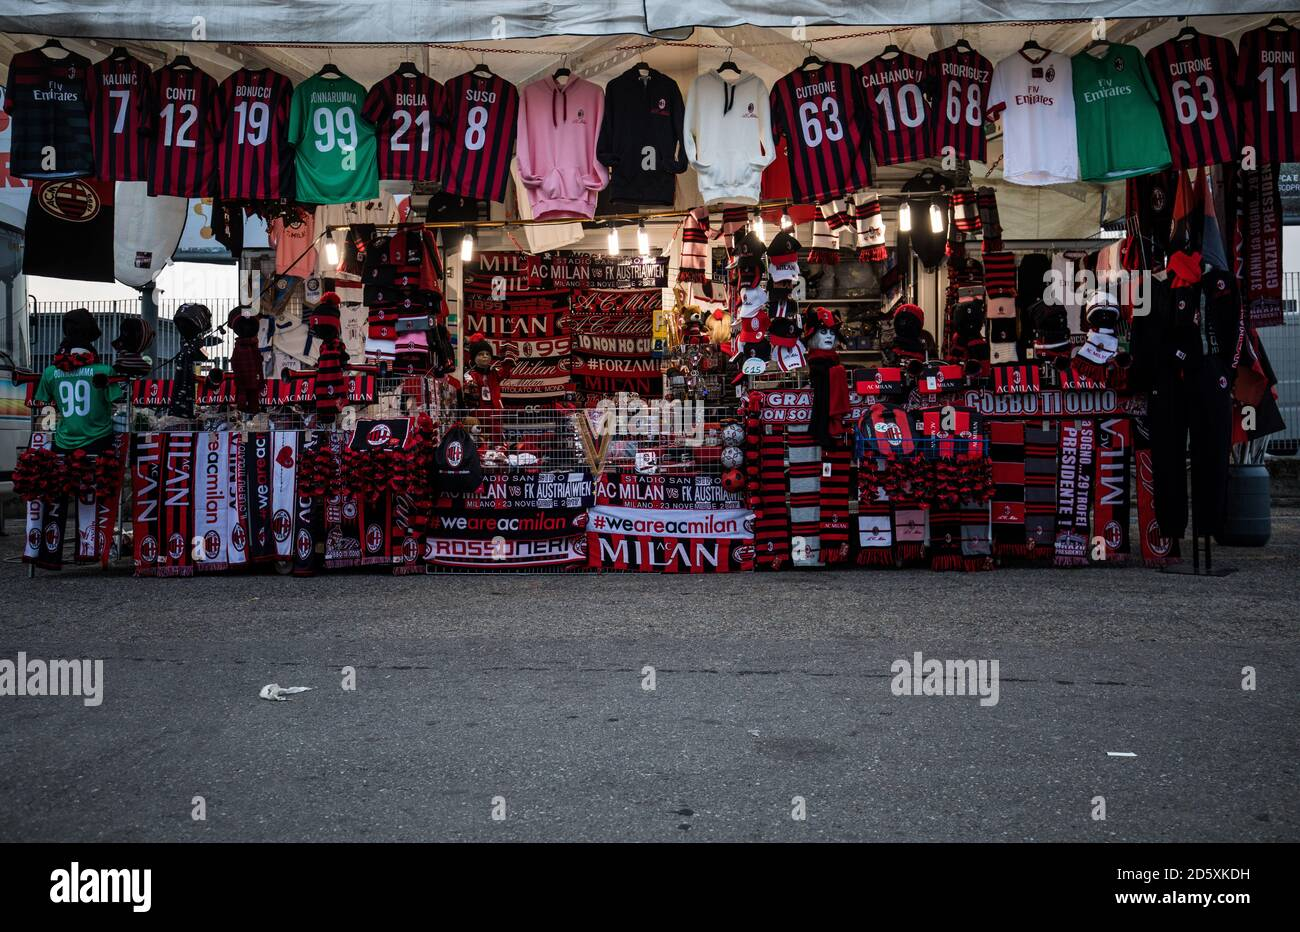 Ac Milan Shirt High Resolution Stock Photography and Images - Alamy